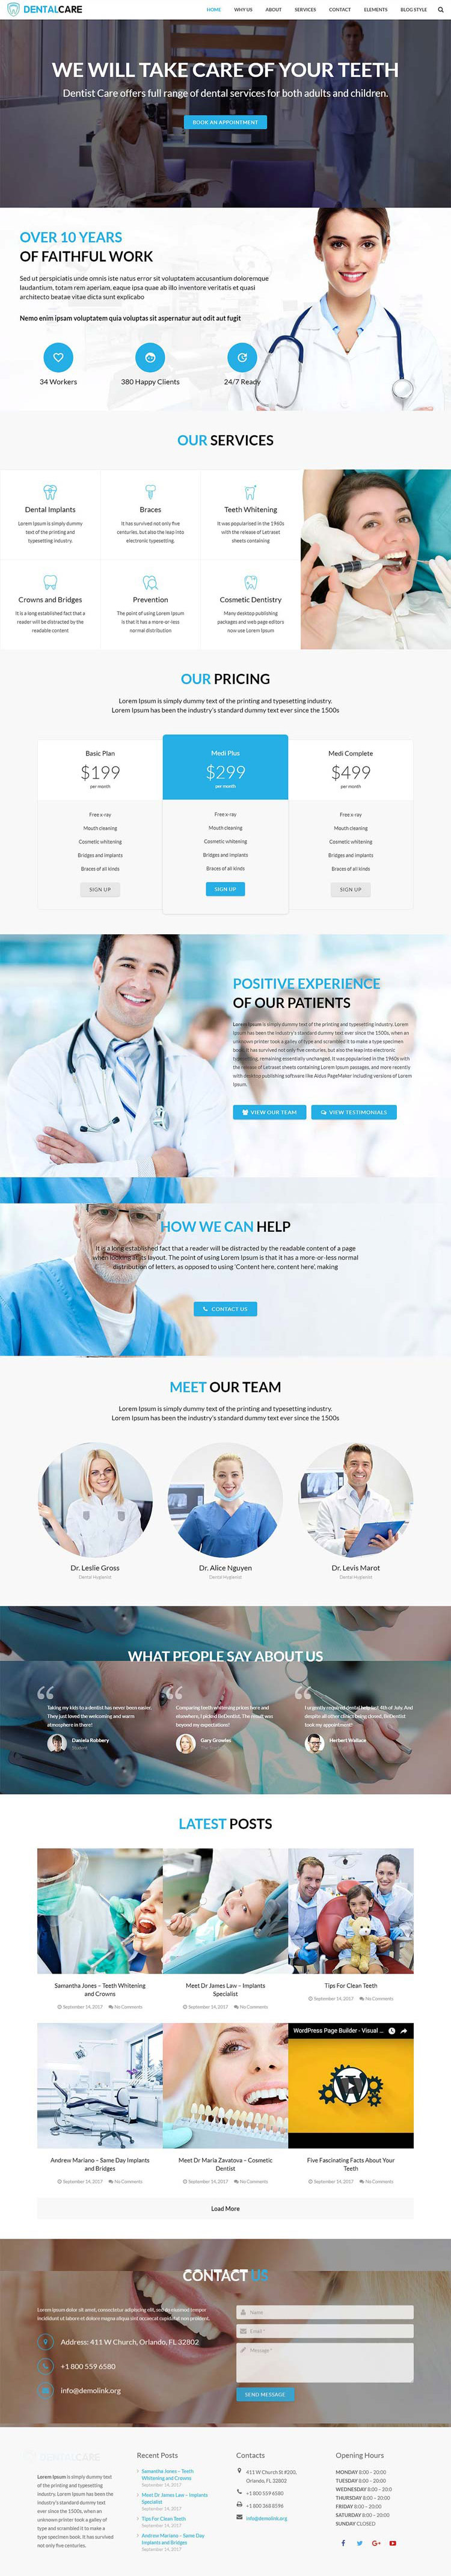 Dentalcare WordPress theme